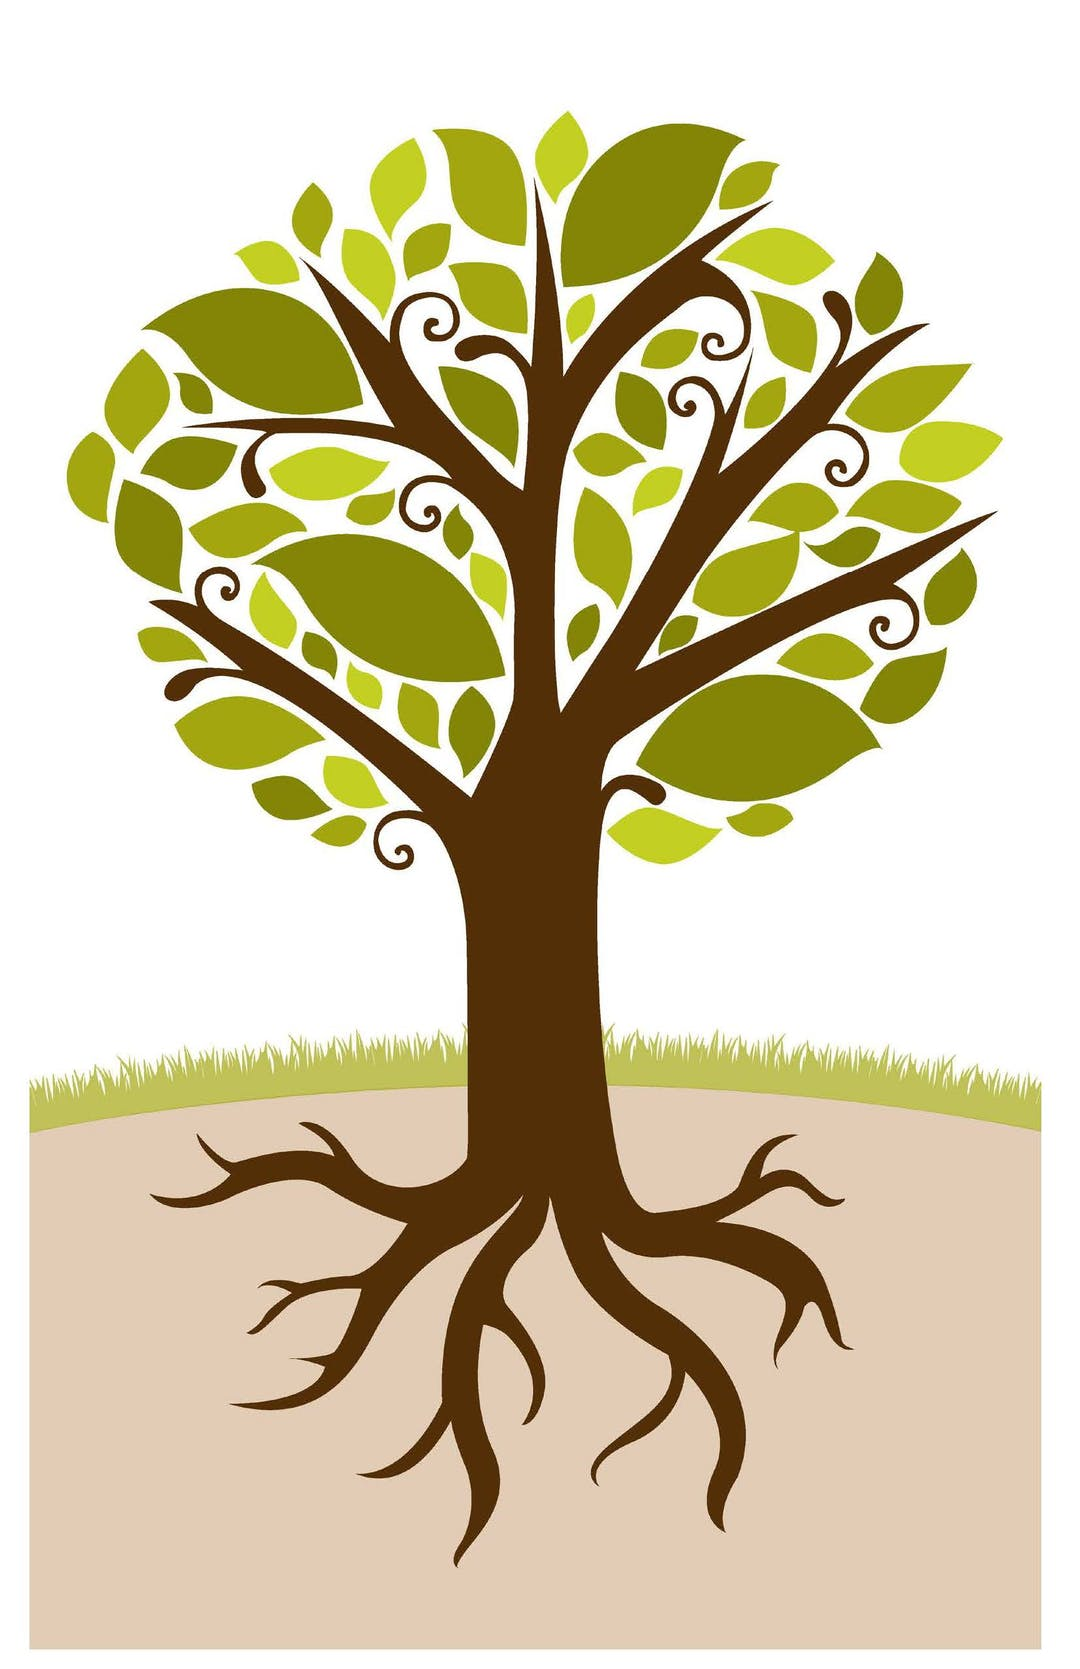 General graphic of a tree